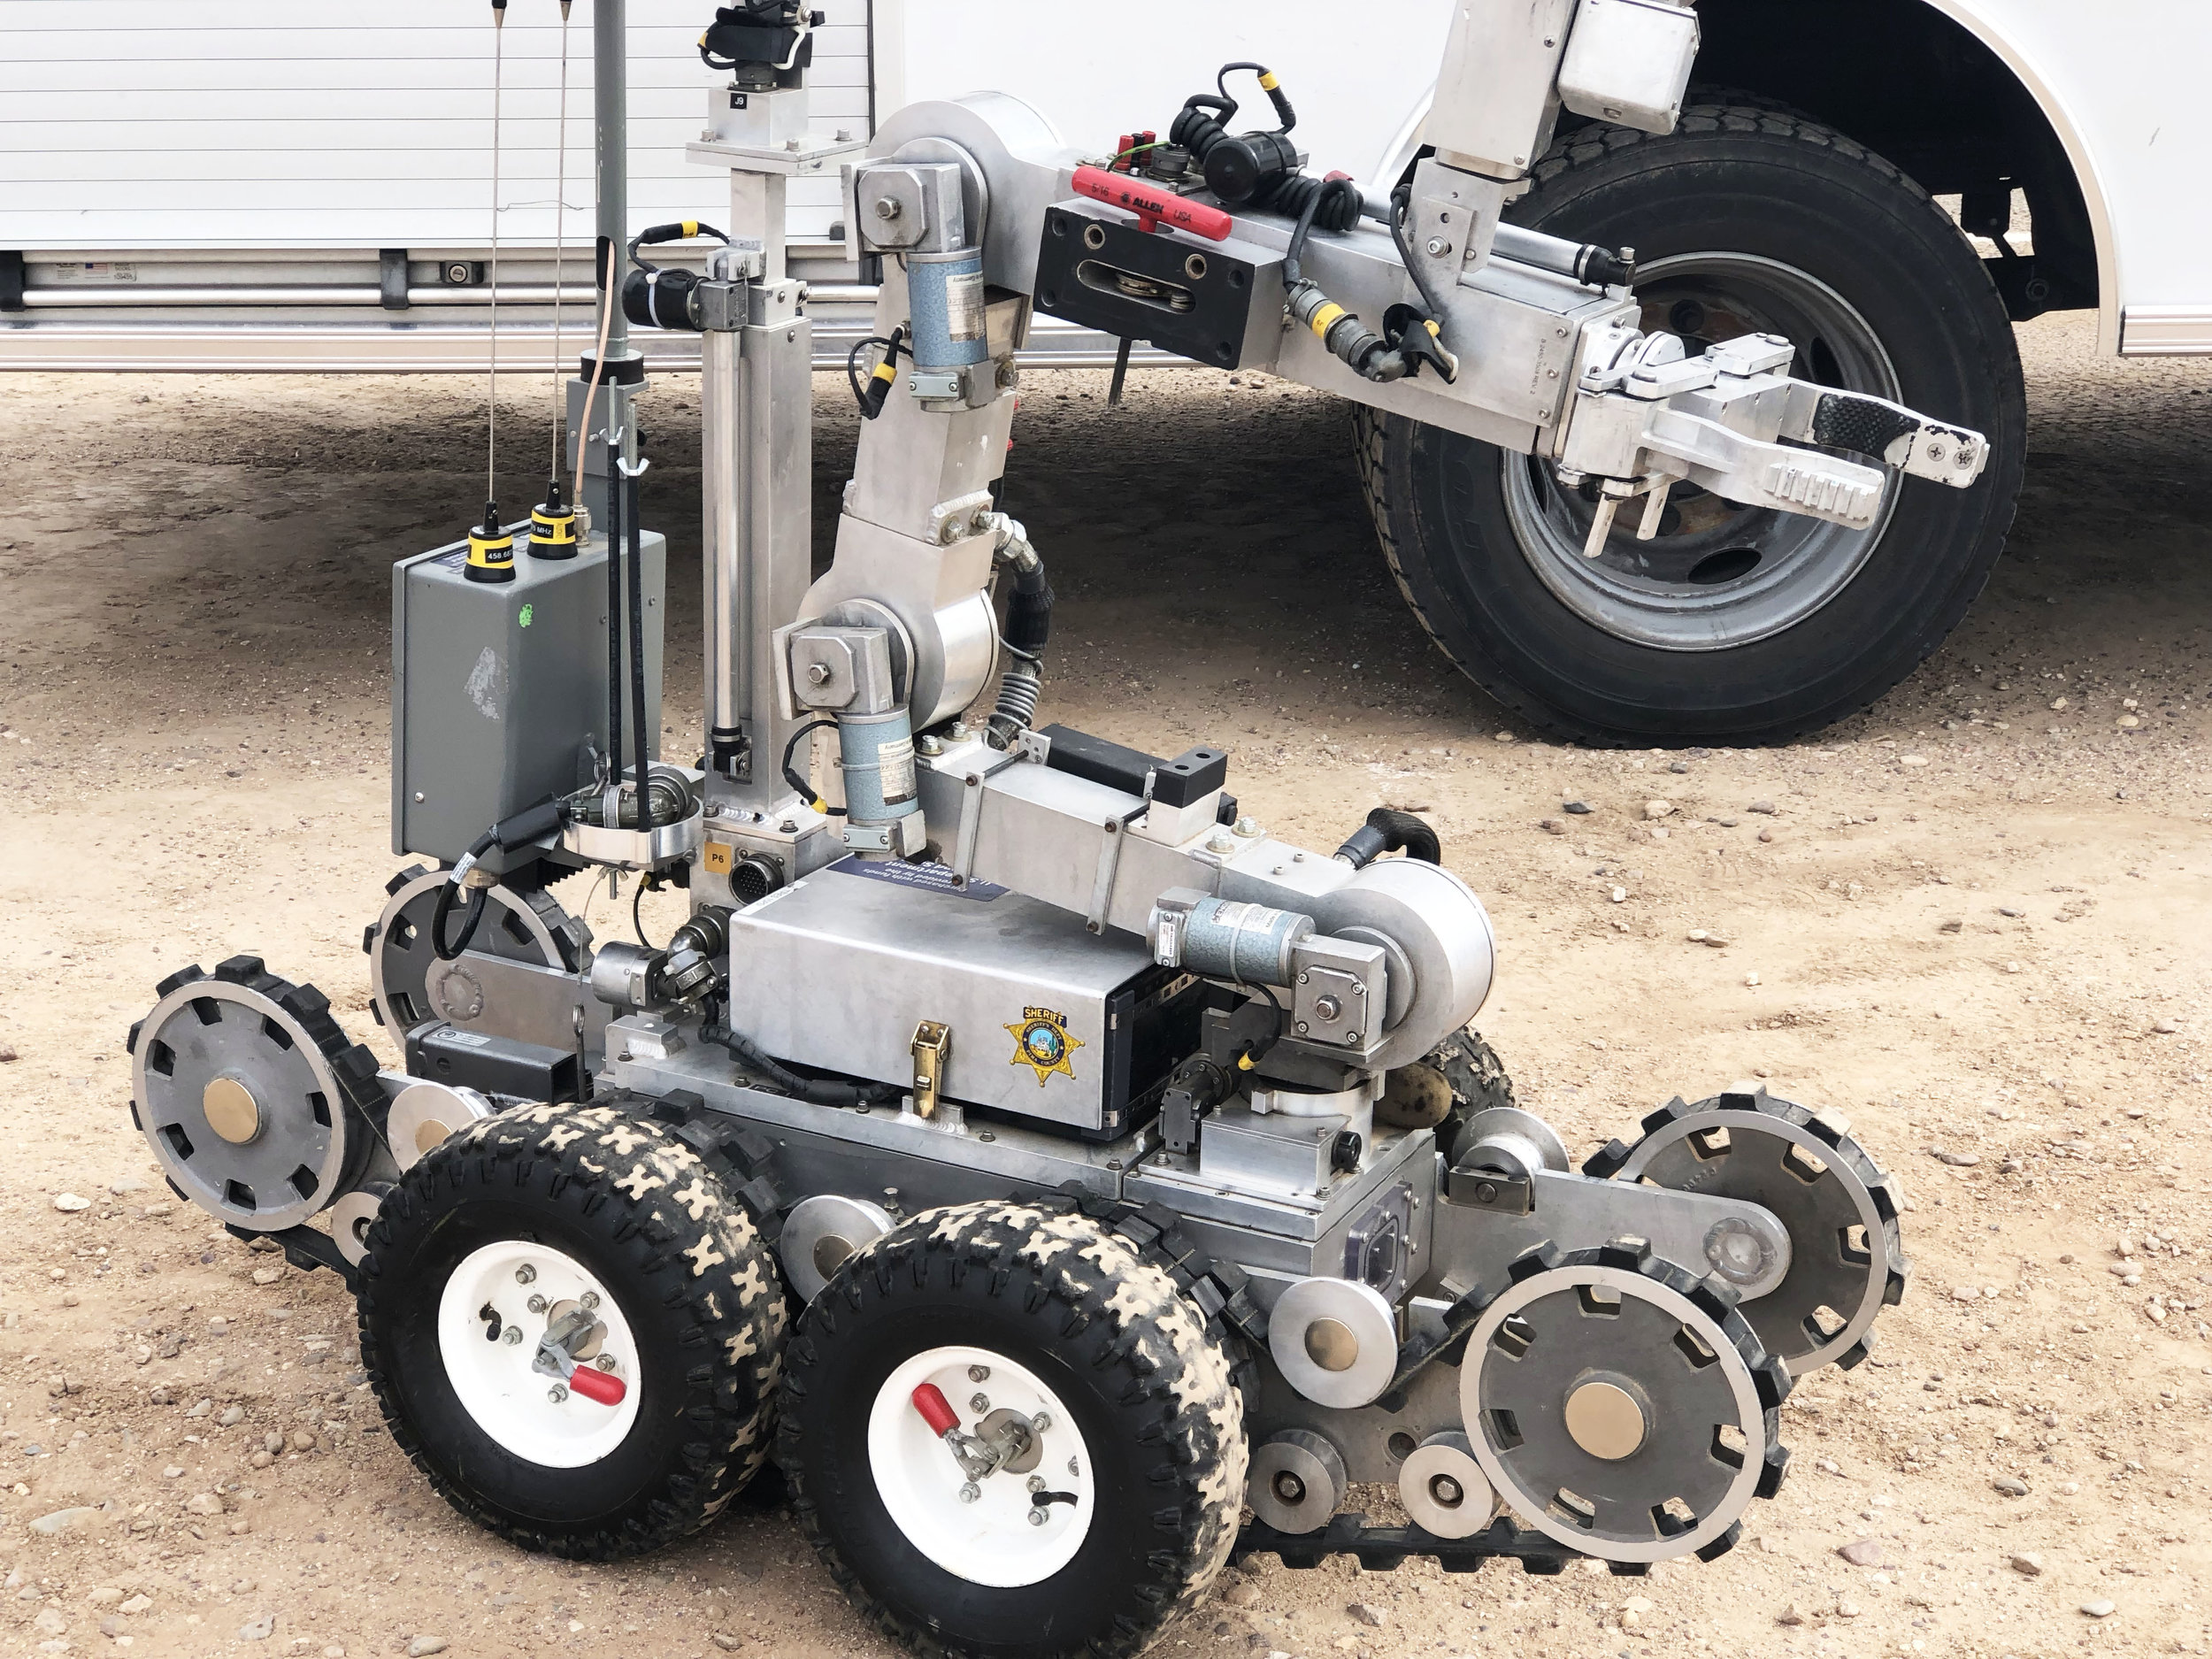 The Pima County Bomb Squad had a few of their robots on display.